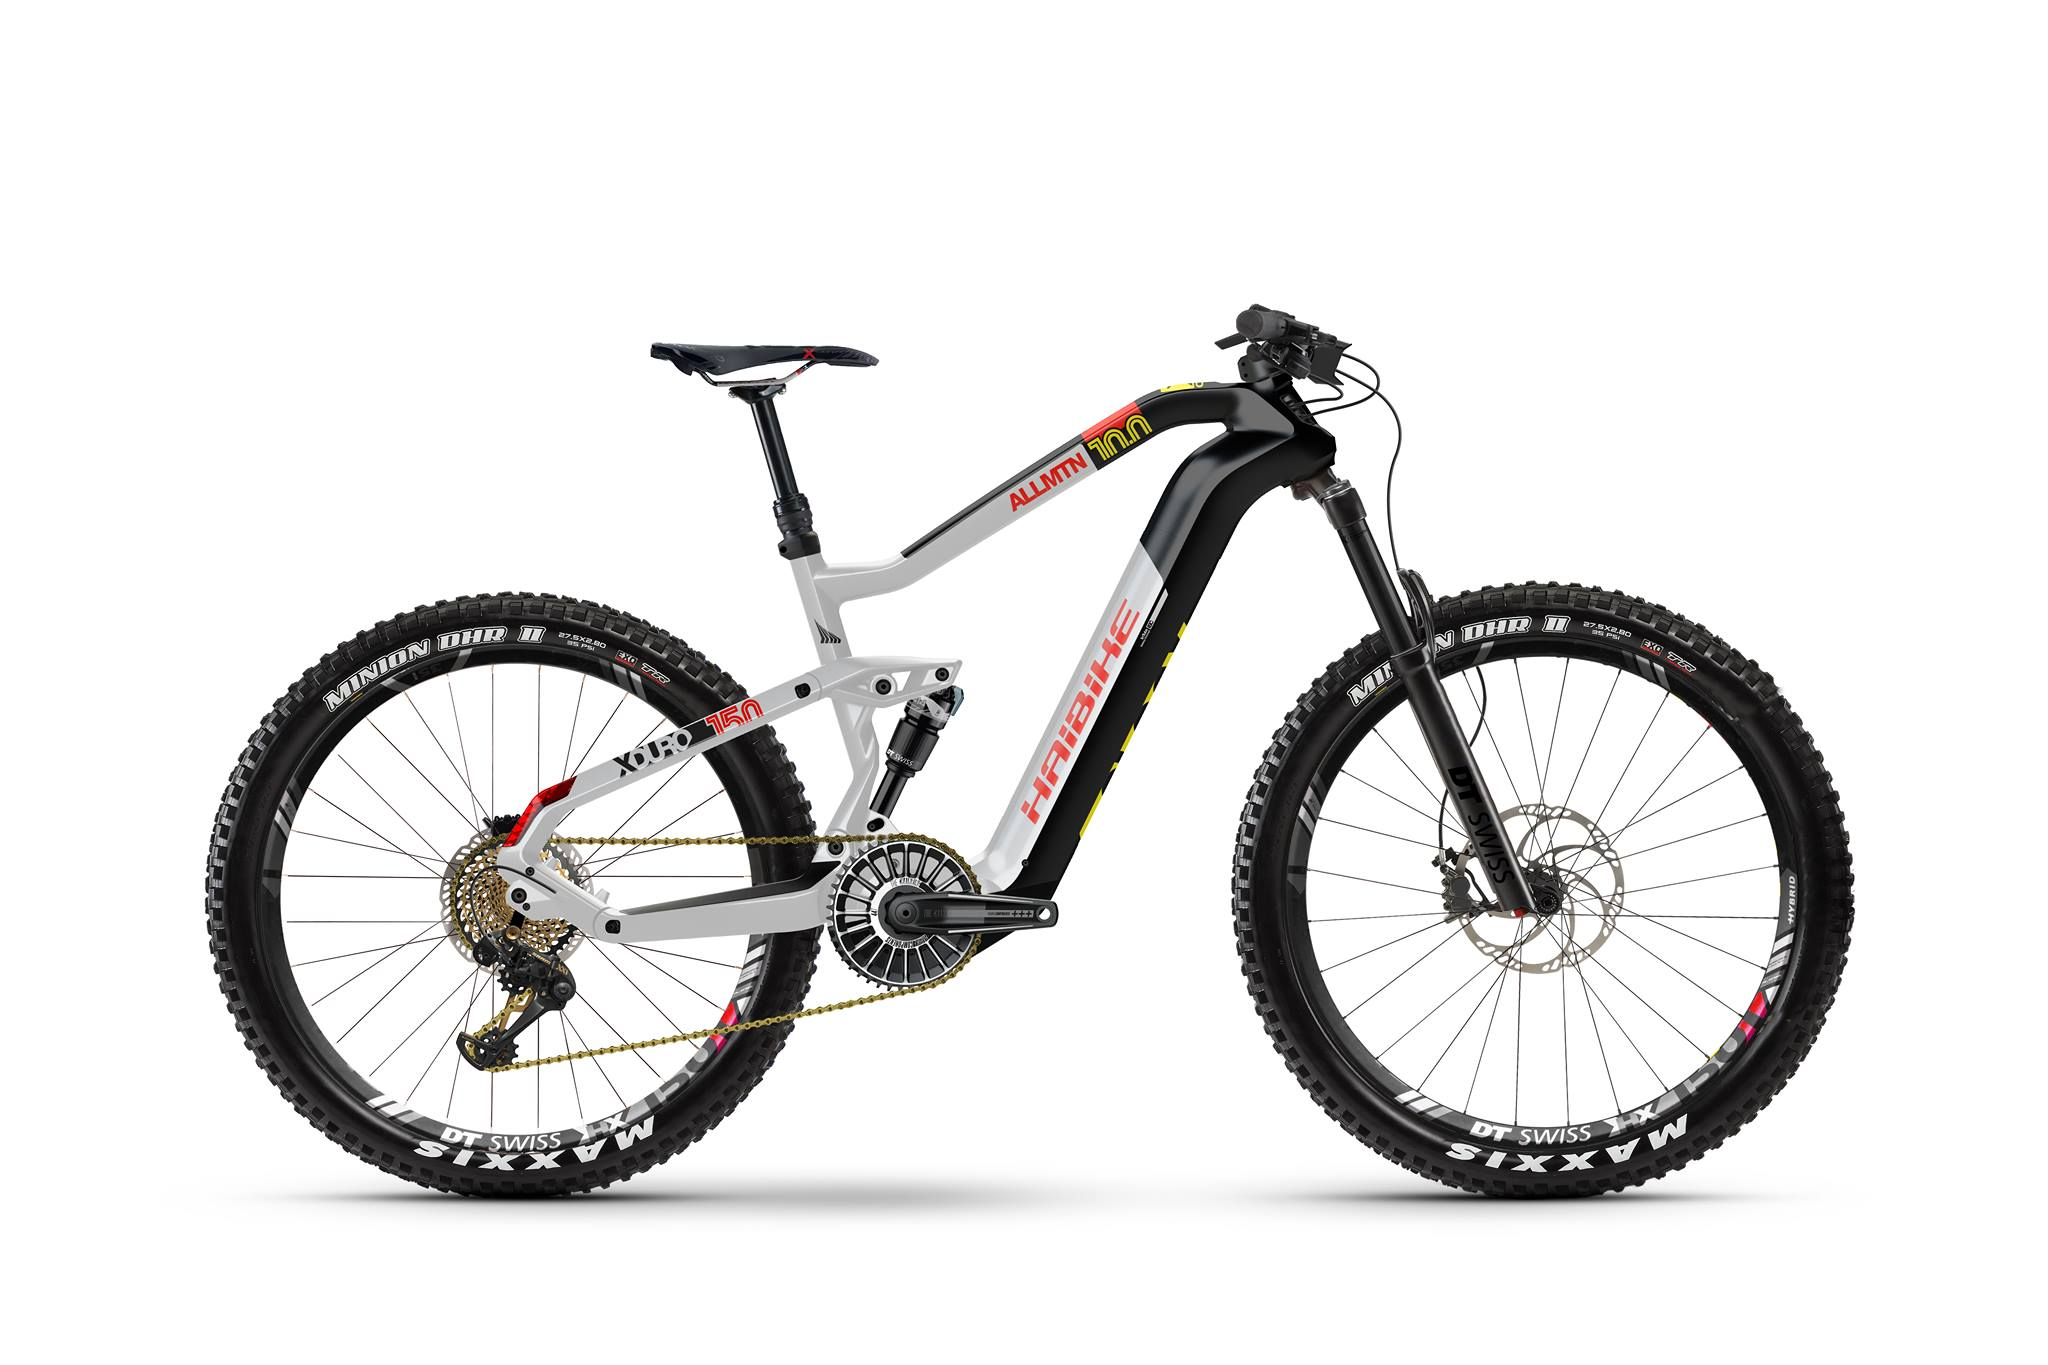 Haibike Flyon Eperformance System And Haibike Models